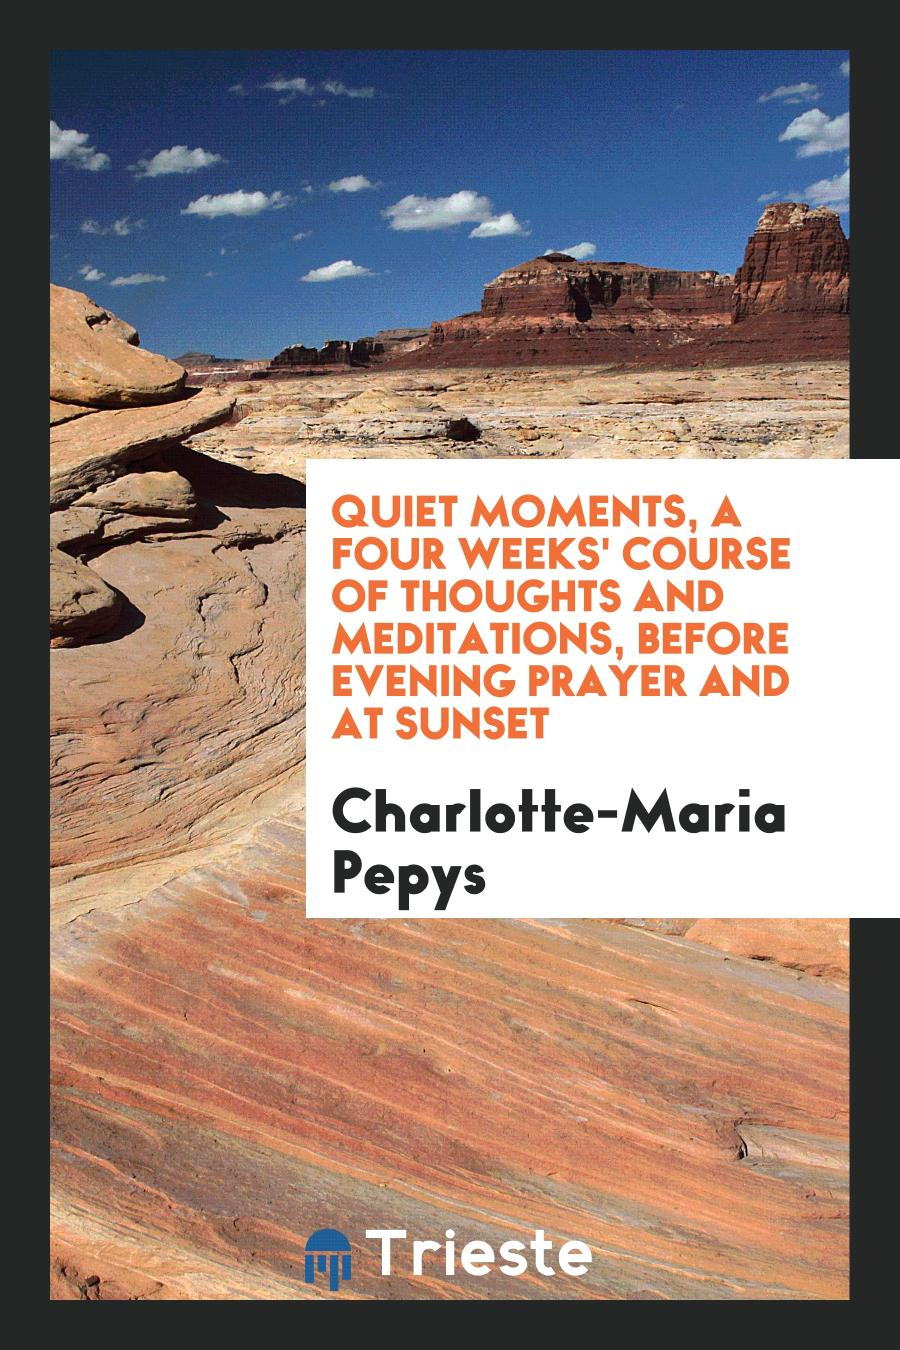 Quiet Moments, a Four Weeks' Course of Thoughts and Meditations, Before Evening Prayer and at Sunset